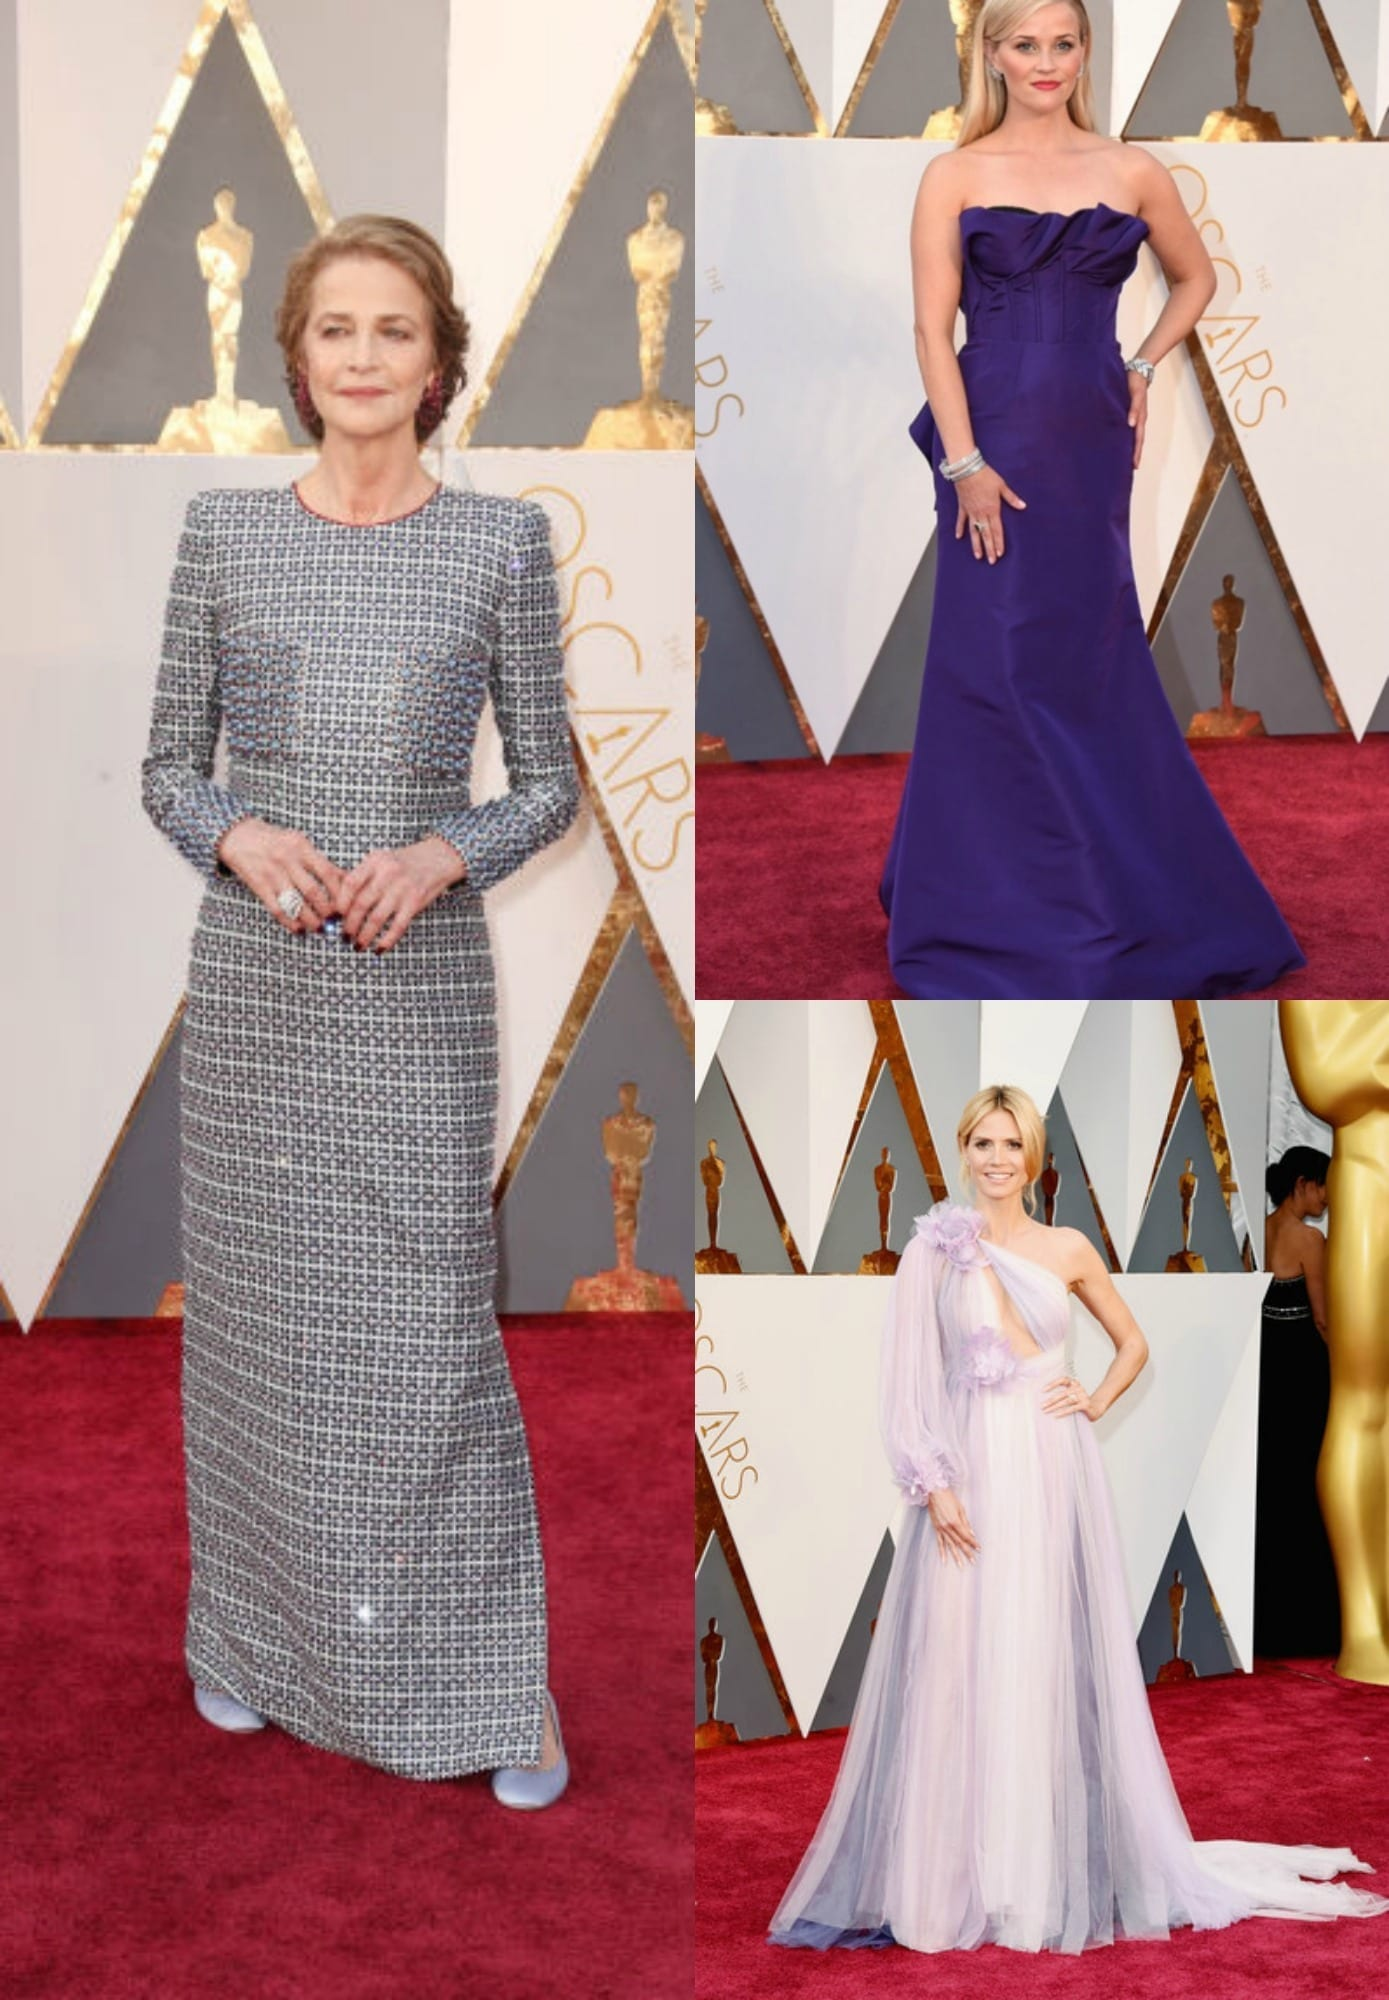 abiti oscar 2016, theladycracy.it, fashion blog, fashion blogger italiane, fashion blogger italia, fashion blog italia, oscar 2016 best dressed